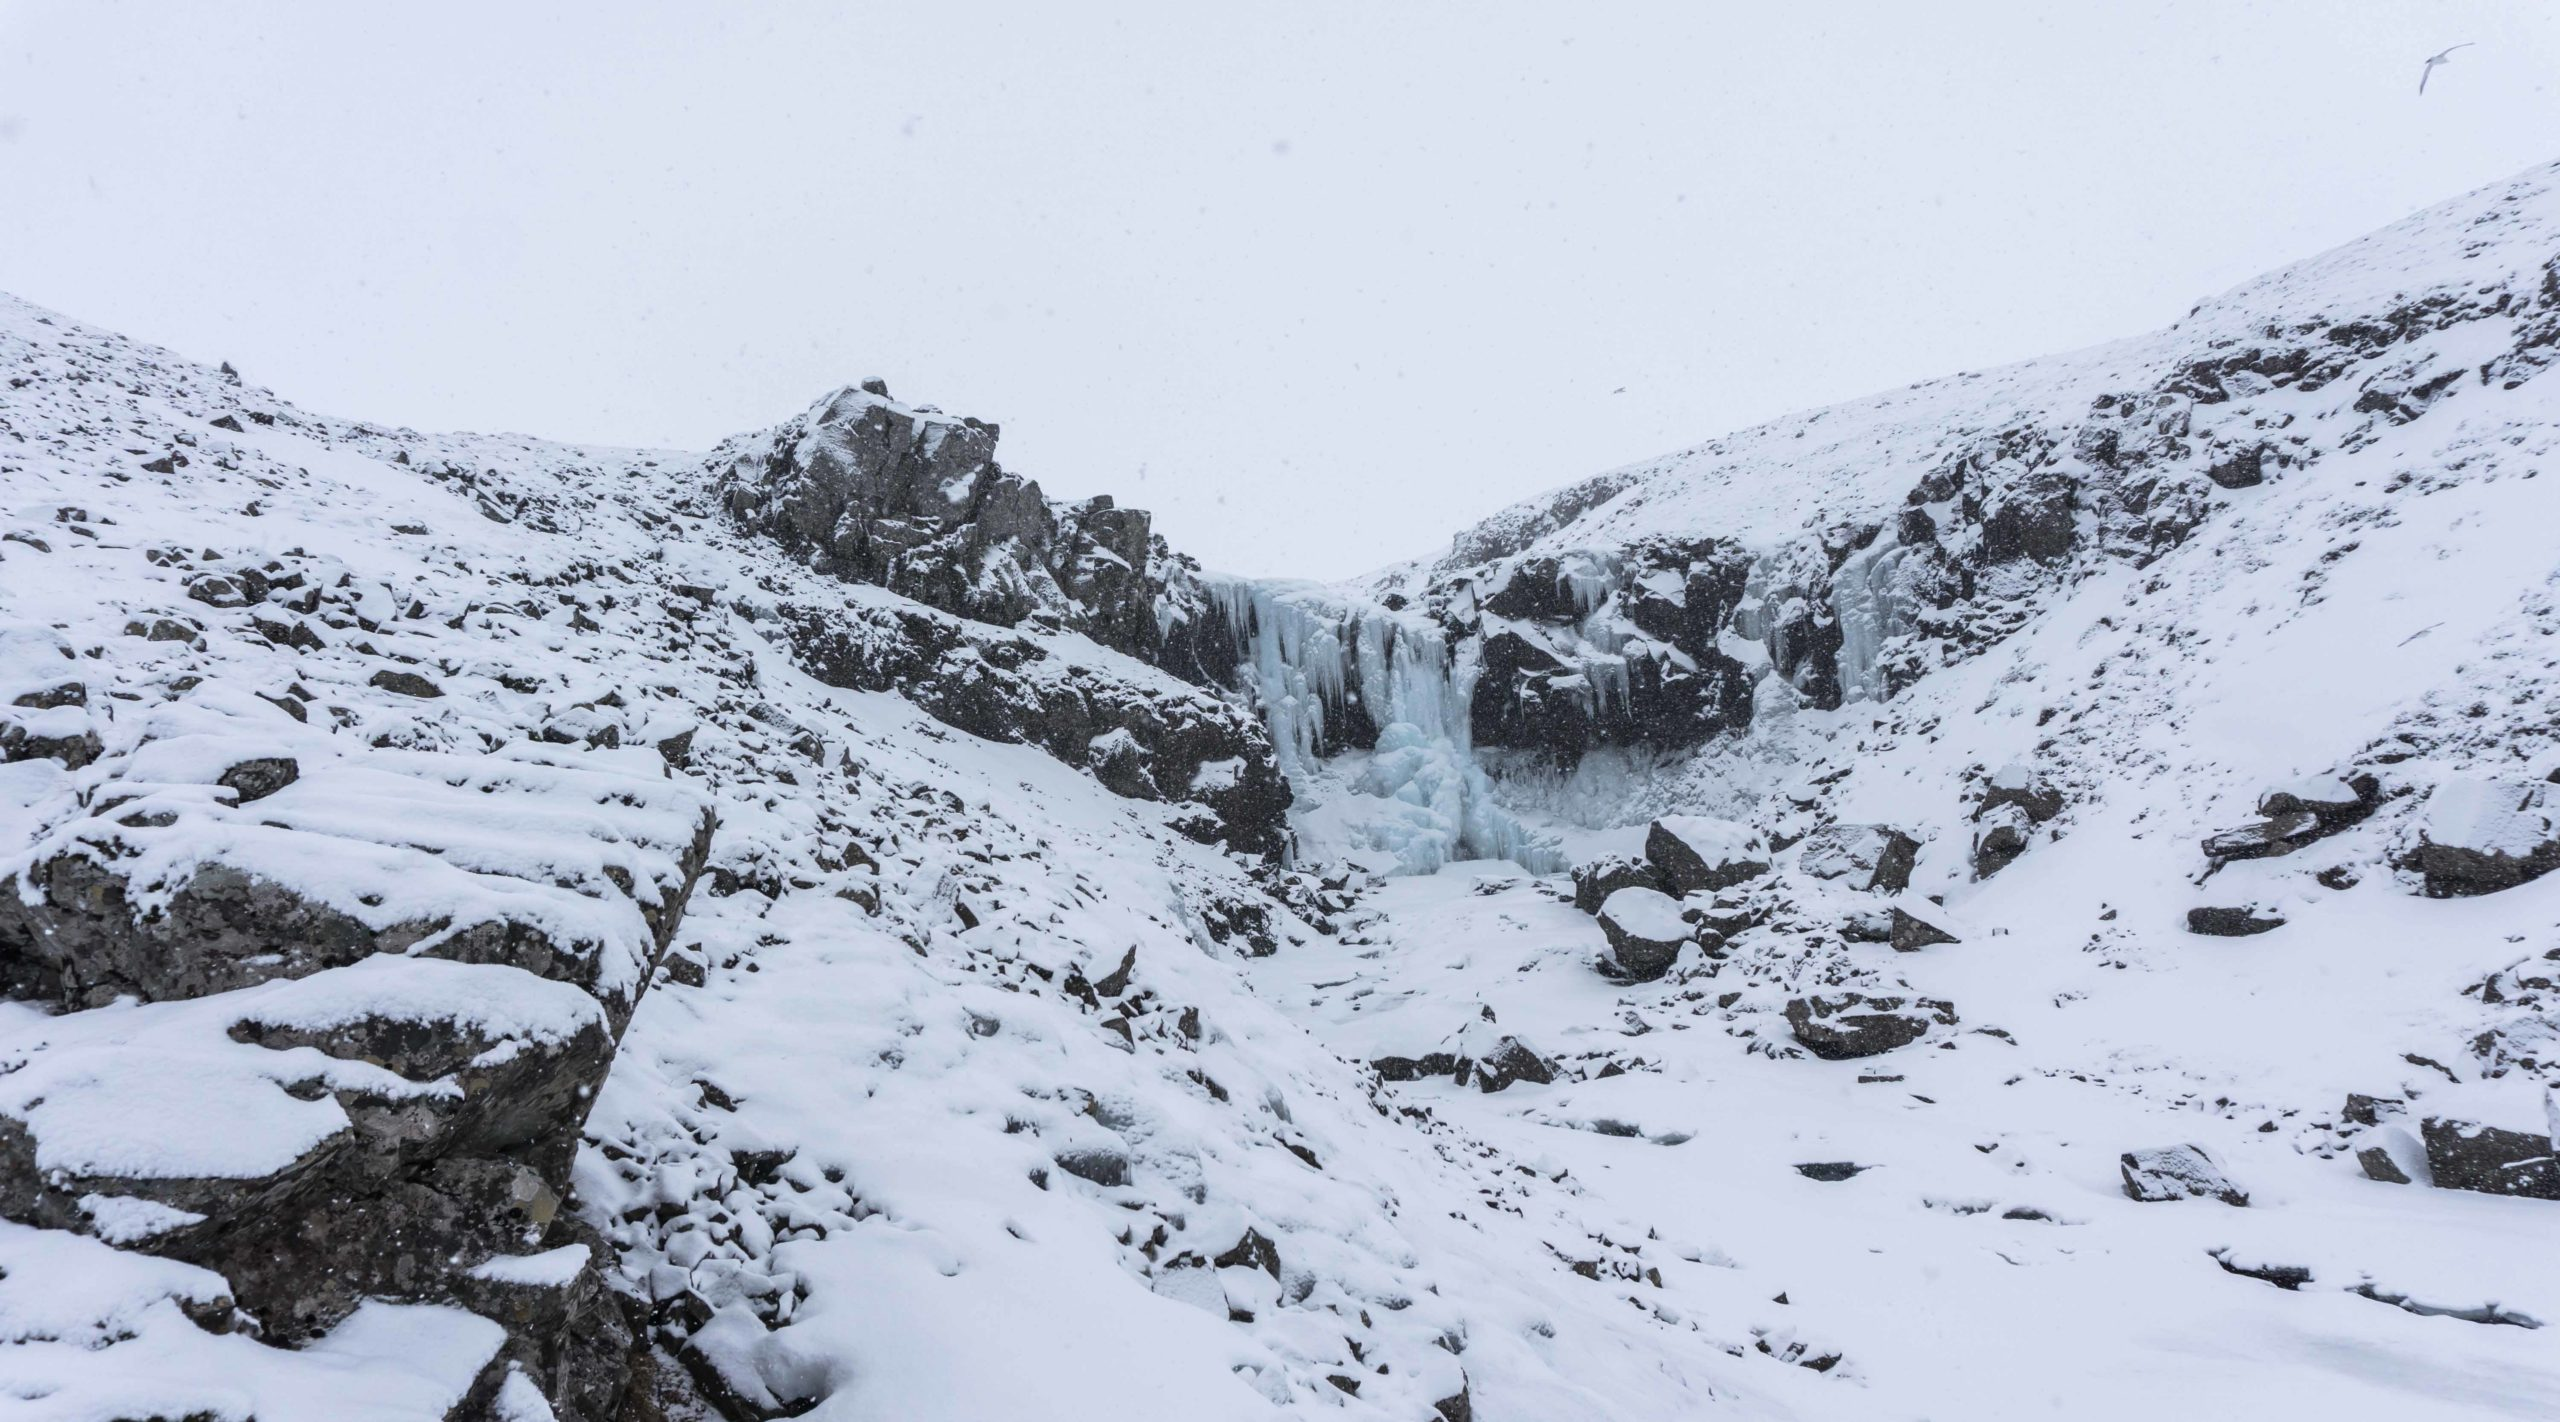 Icy waterfall, waterfall, Iceland, winter, guided tours, super jeep tour,